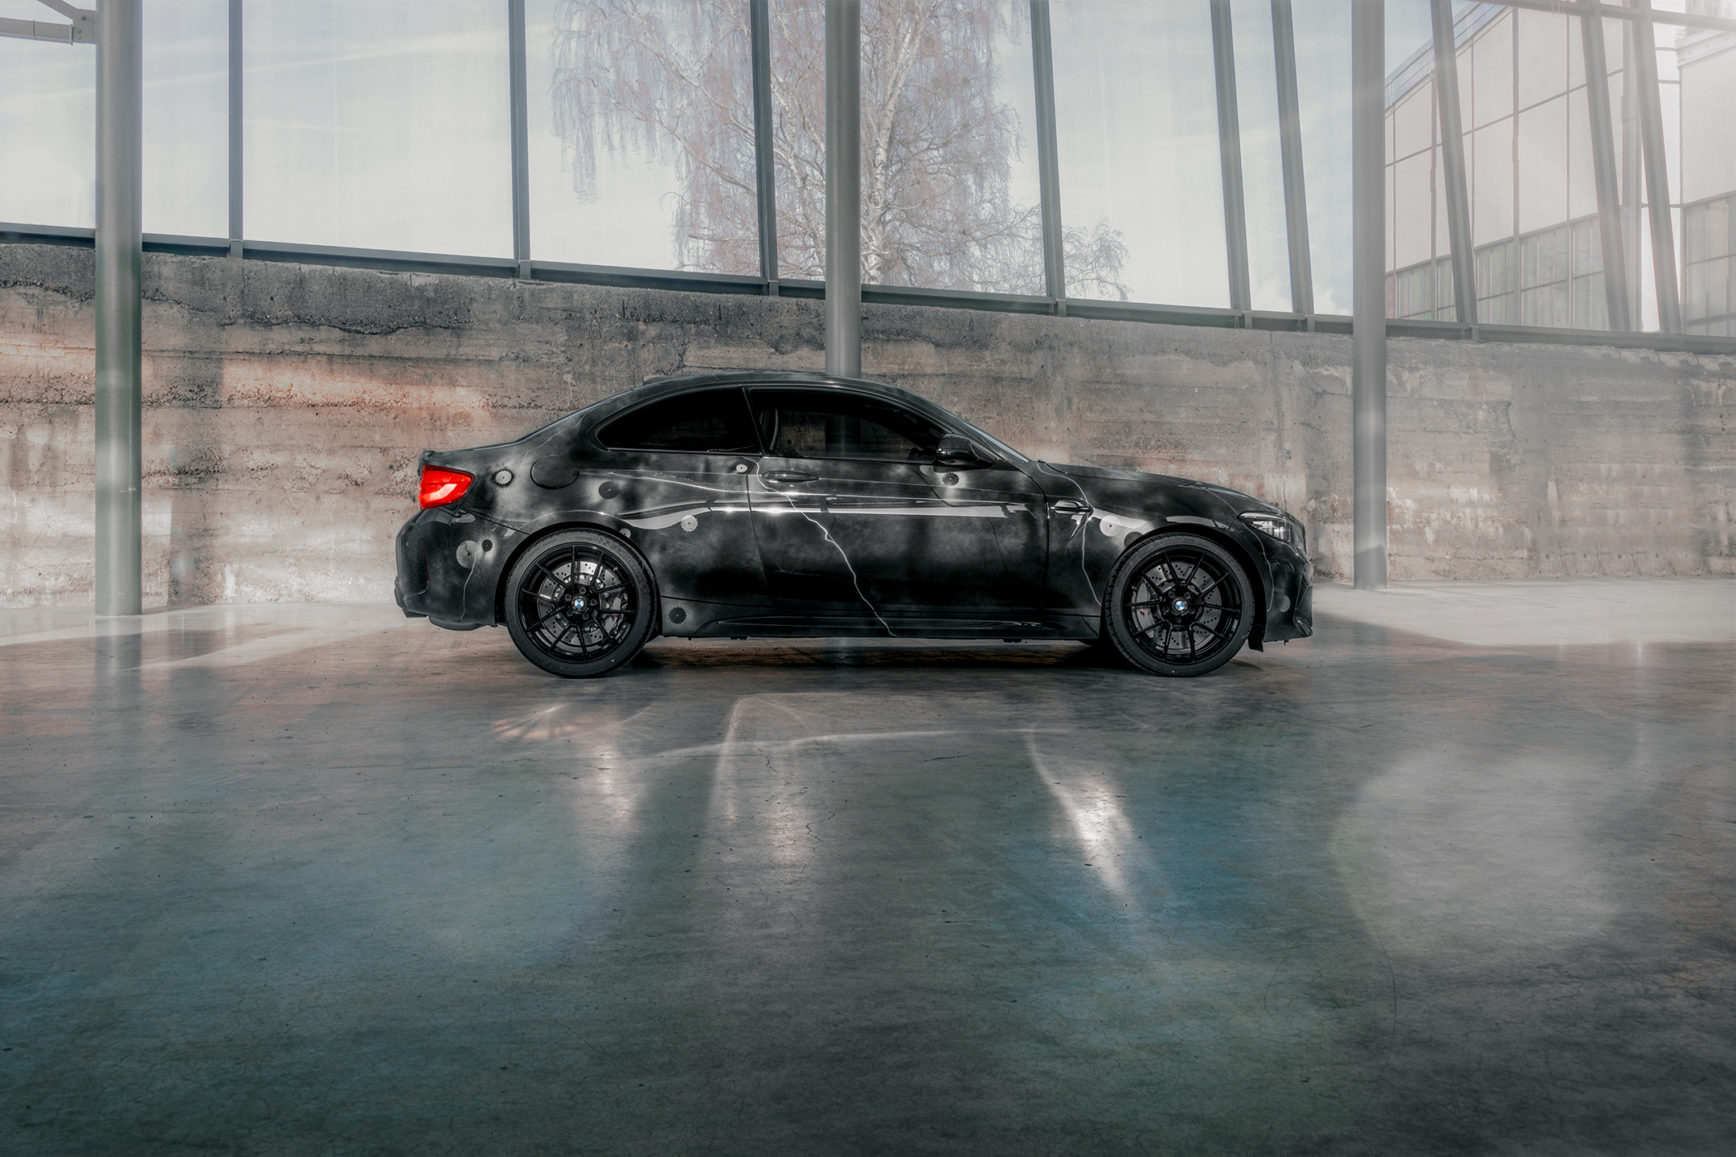 BMW M2 by FUTURA 2000 - Street Art Car - 2020 - side-face / profil